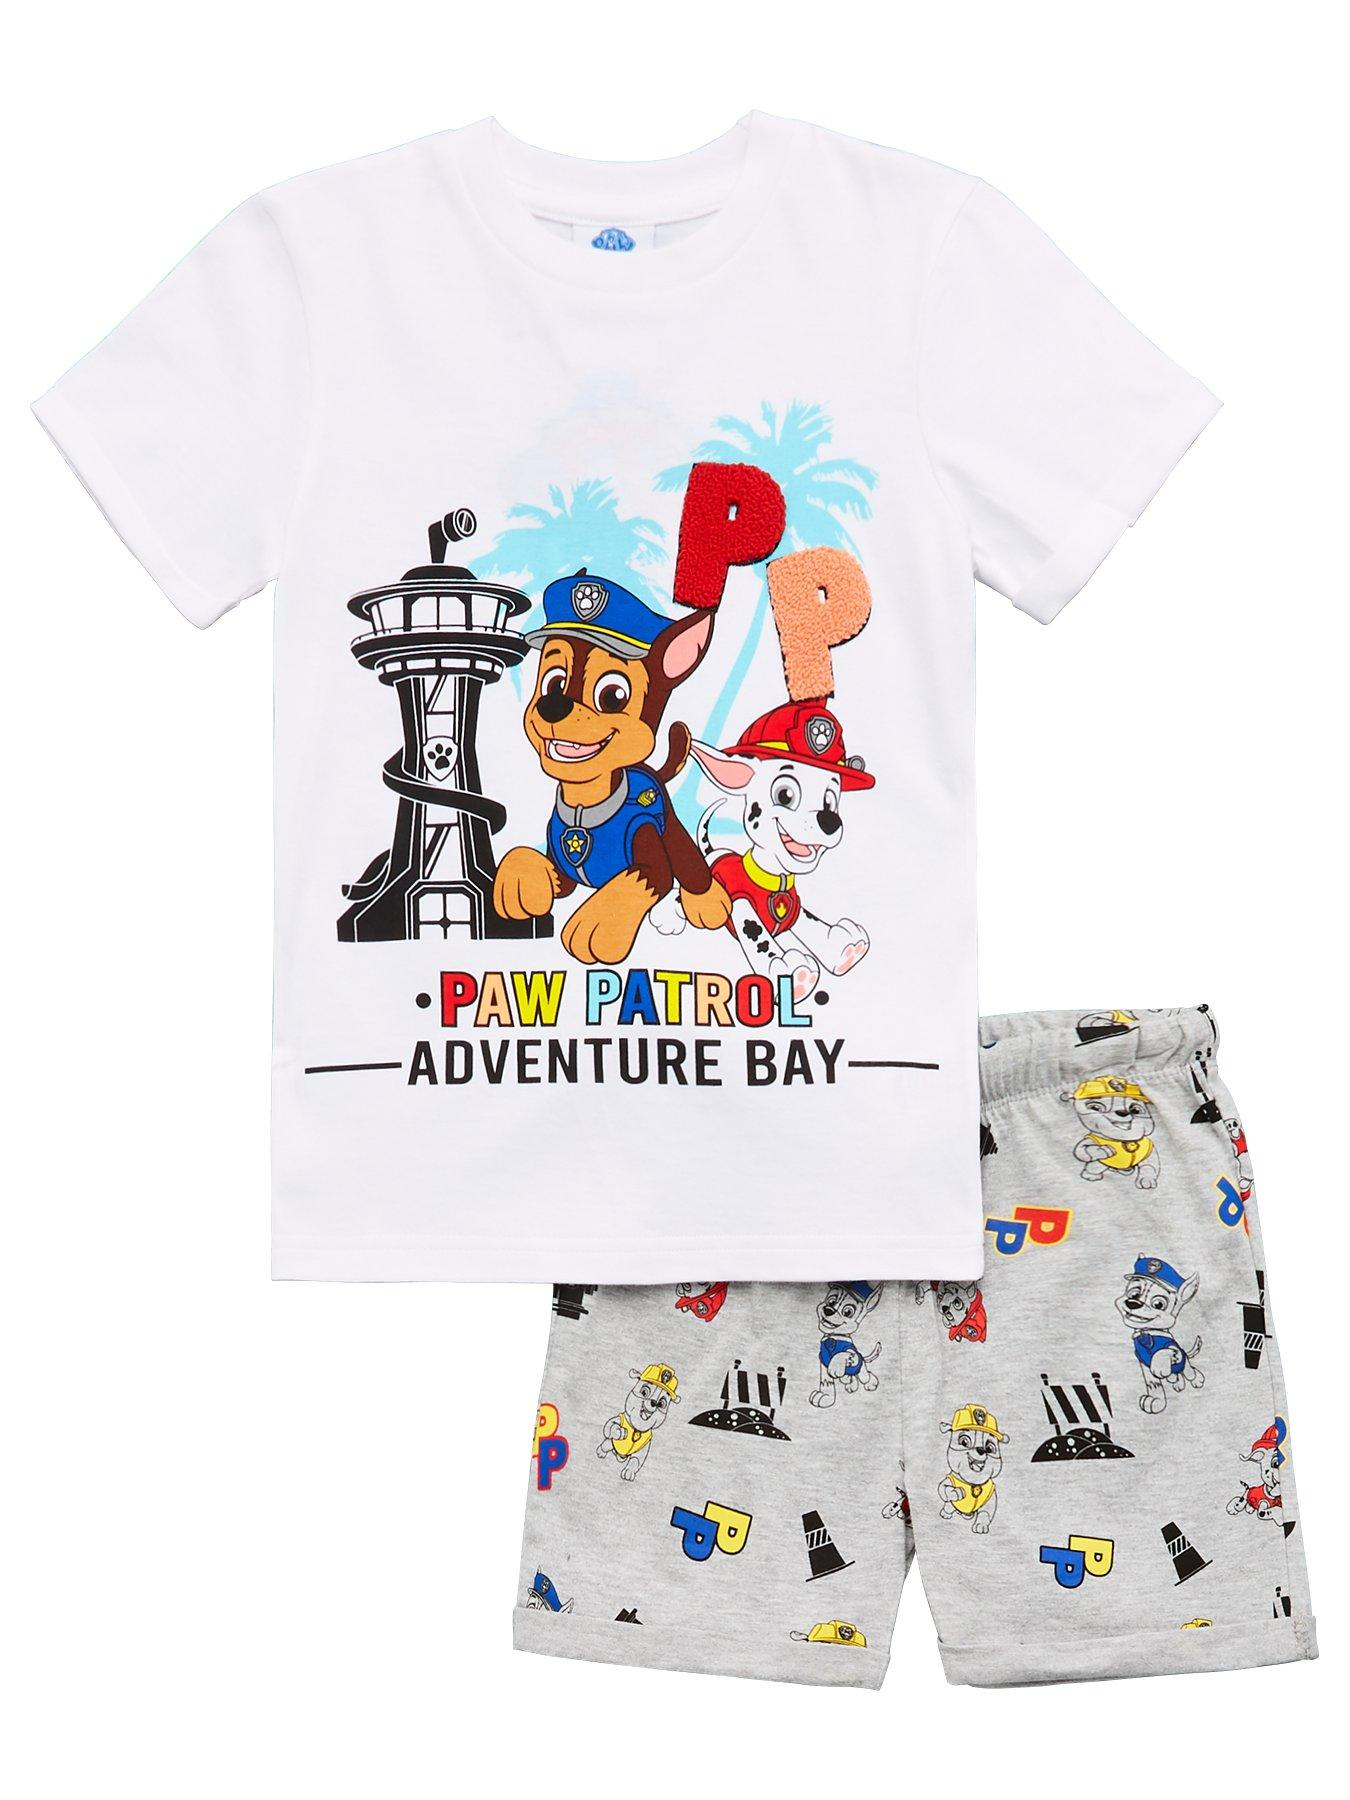 Boys Paw Patrol Ready for Action T-Shirt /& Camo Shorts Set Sizes from 12 Months to 6 Years